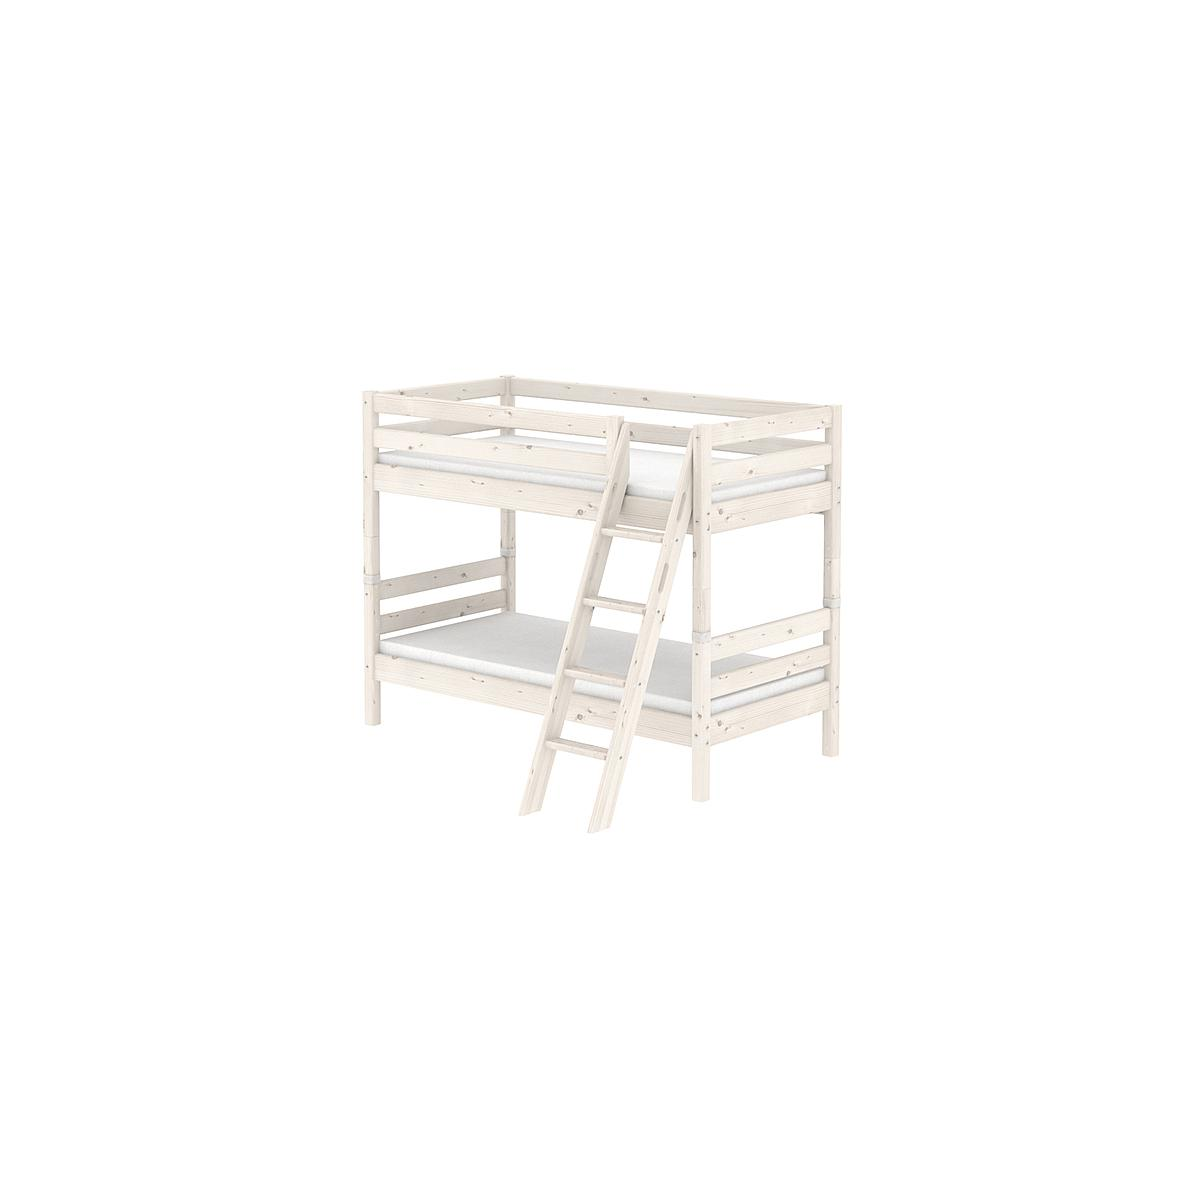 Litera 90x190 CLASSIC Flexa escalera inclinada blanco cal